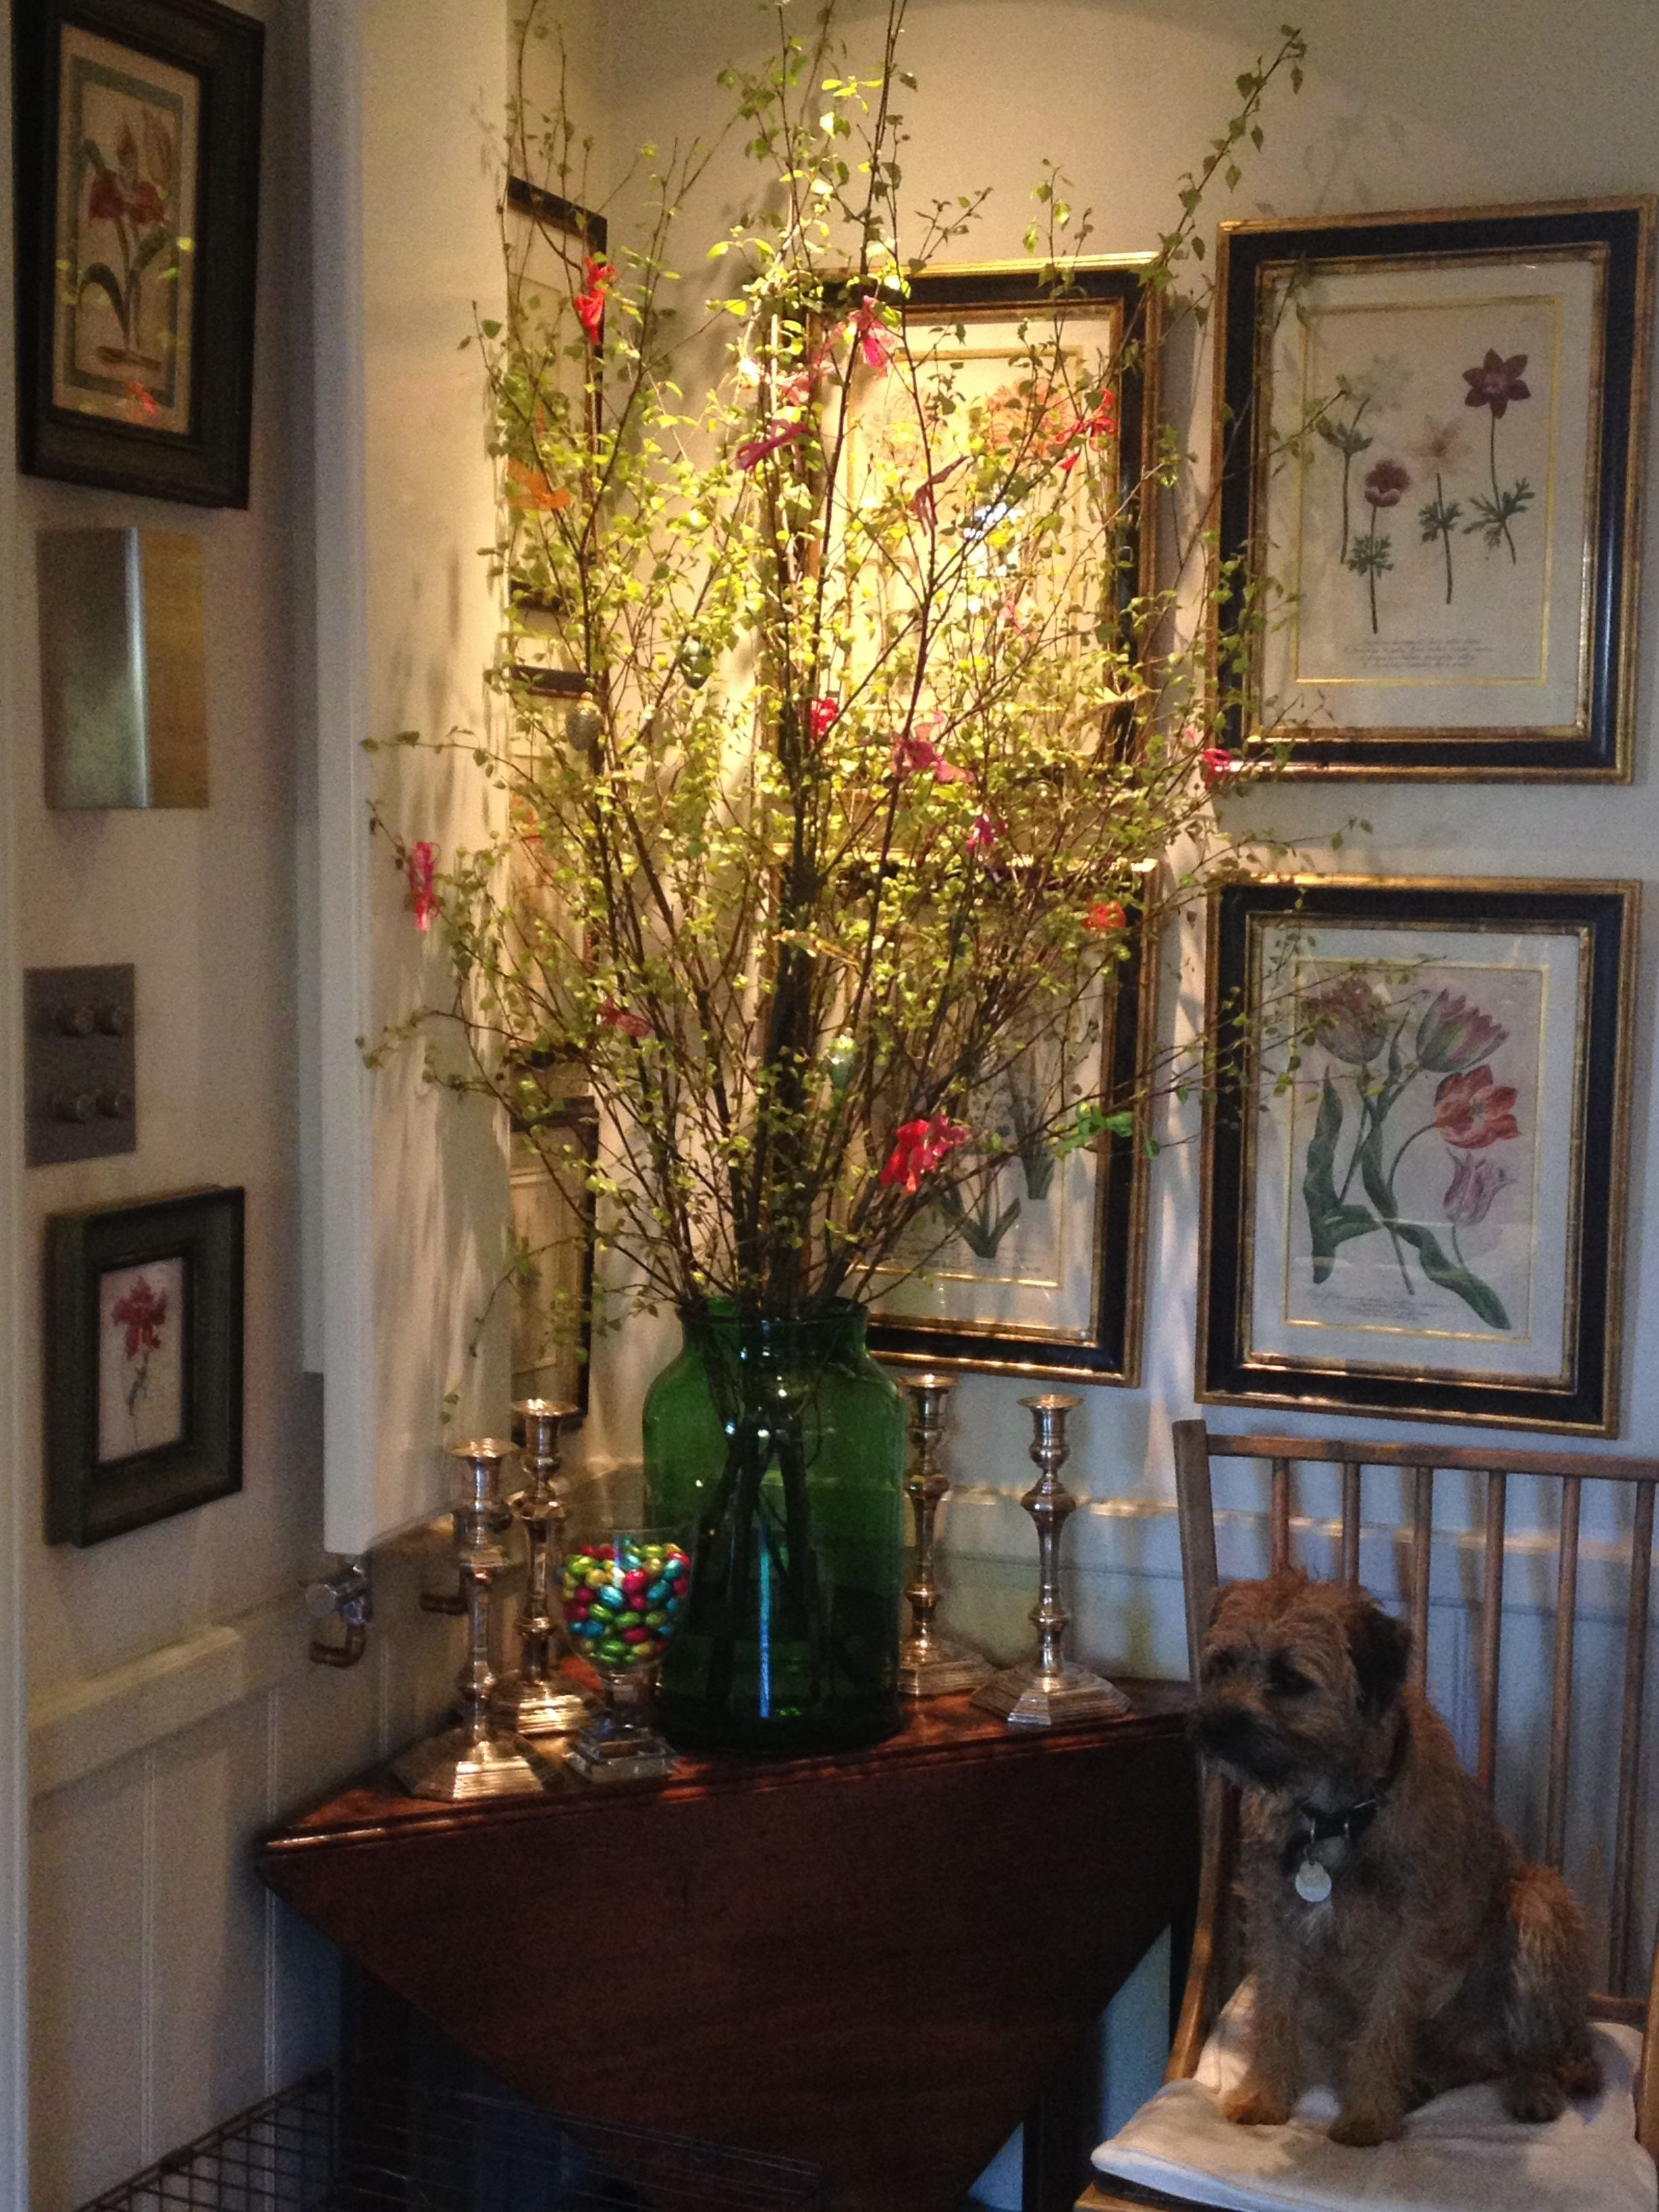 Easter Tree Brightly Coloured Ribbons Choccies In A Oversized Glass And Wafer Our Border Terrier Happ Flower Room Home Exterior Makeover Inspiration Wall